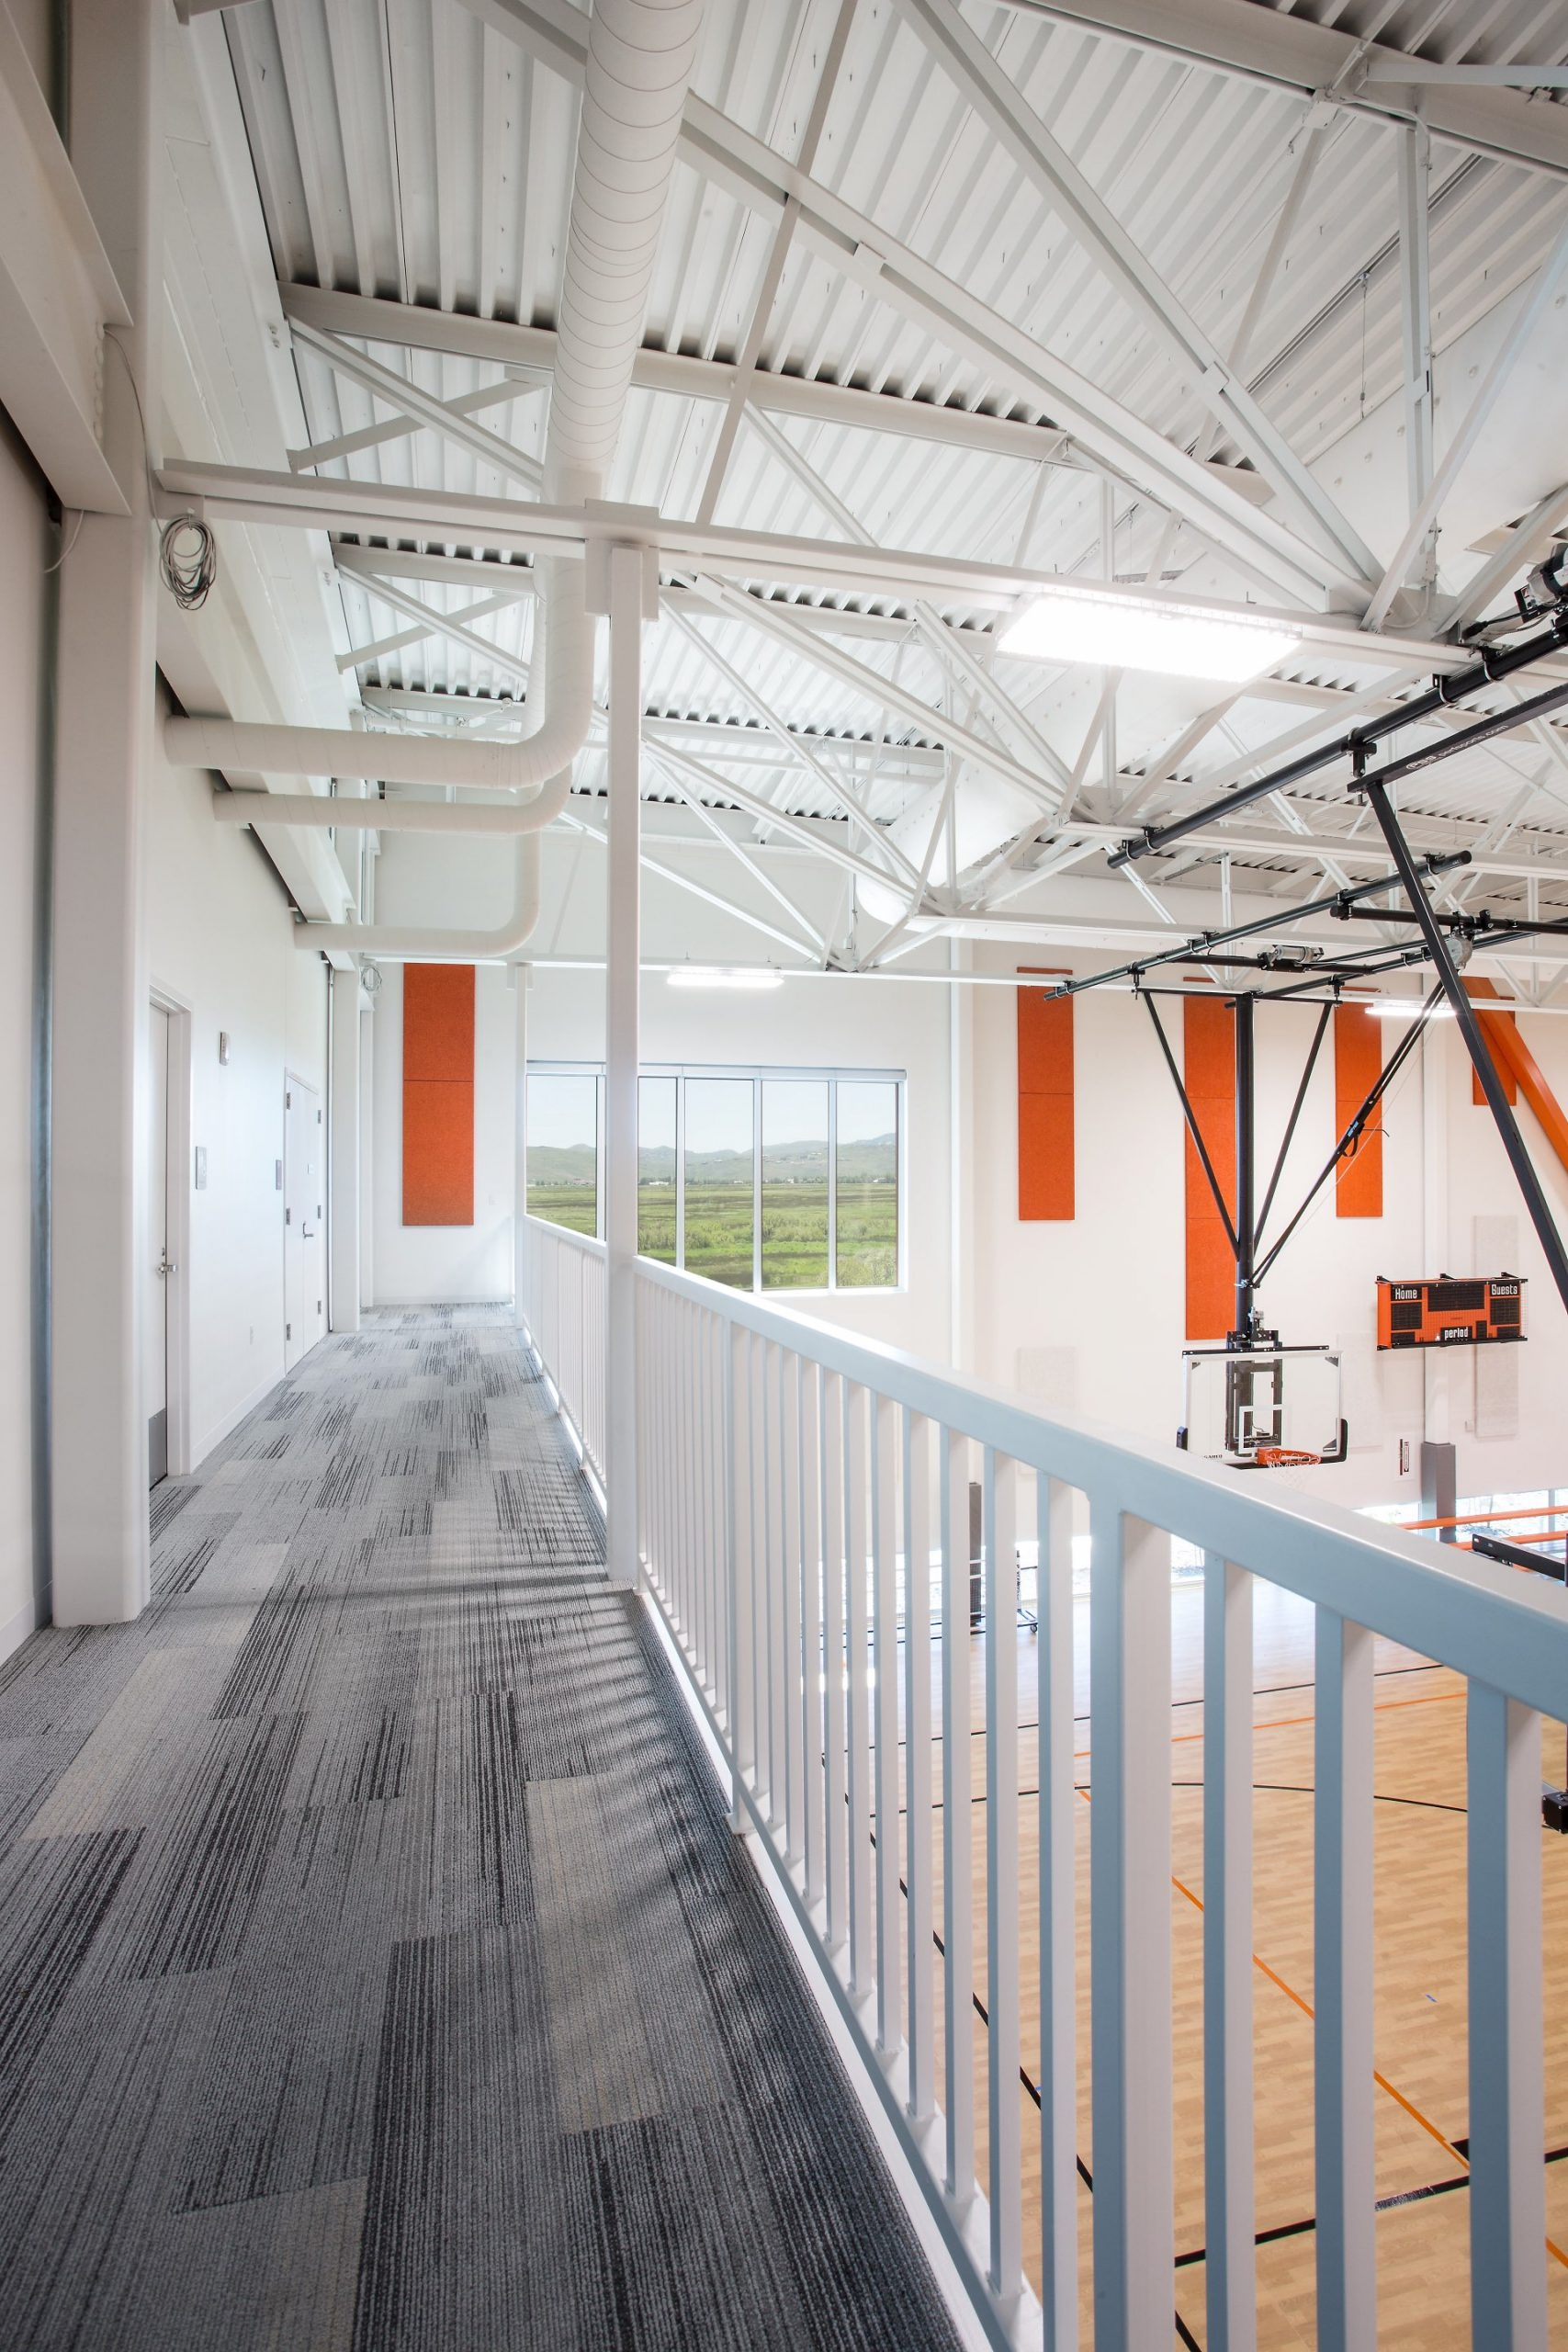 Elevated interior track, Basin Recreation Fieldhouse Expansion, architectural design by Elliott Workgroup